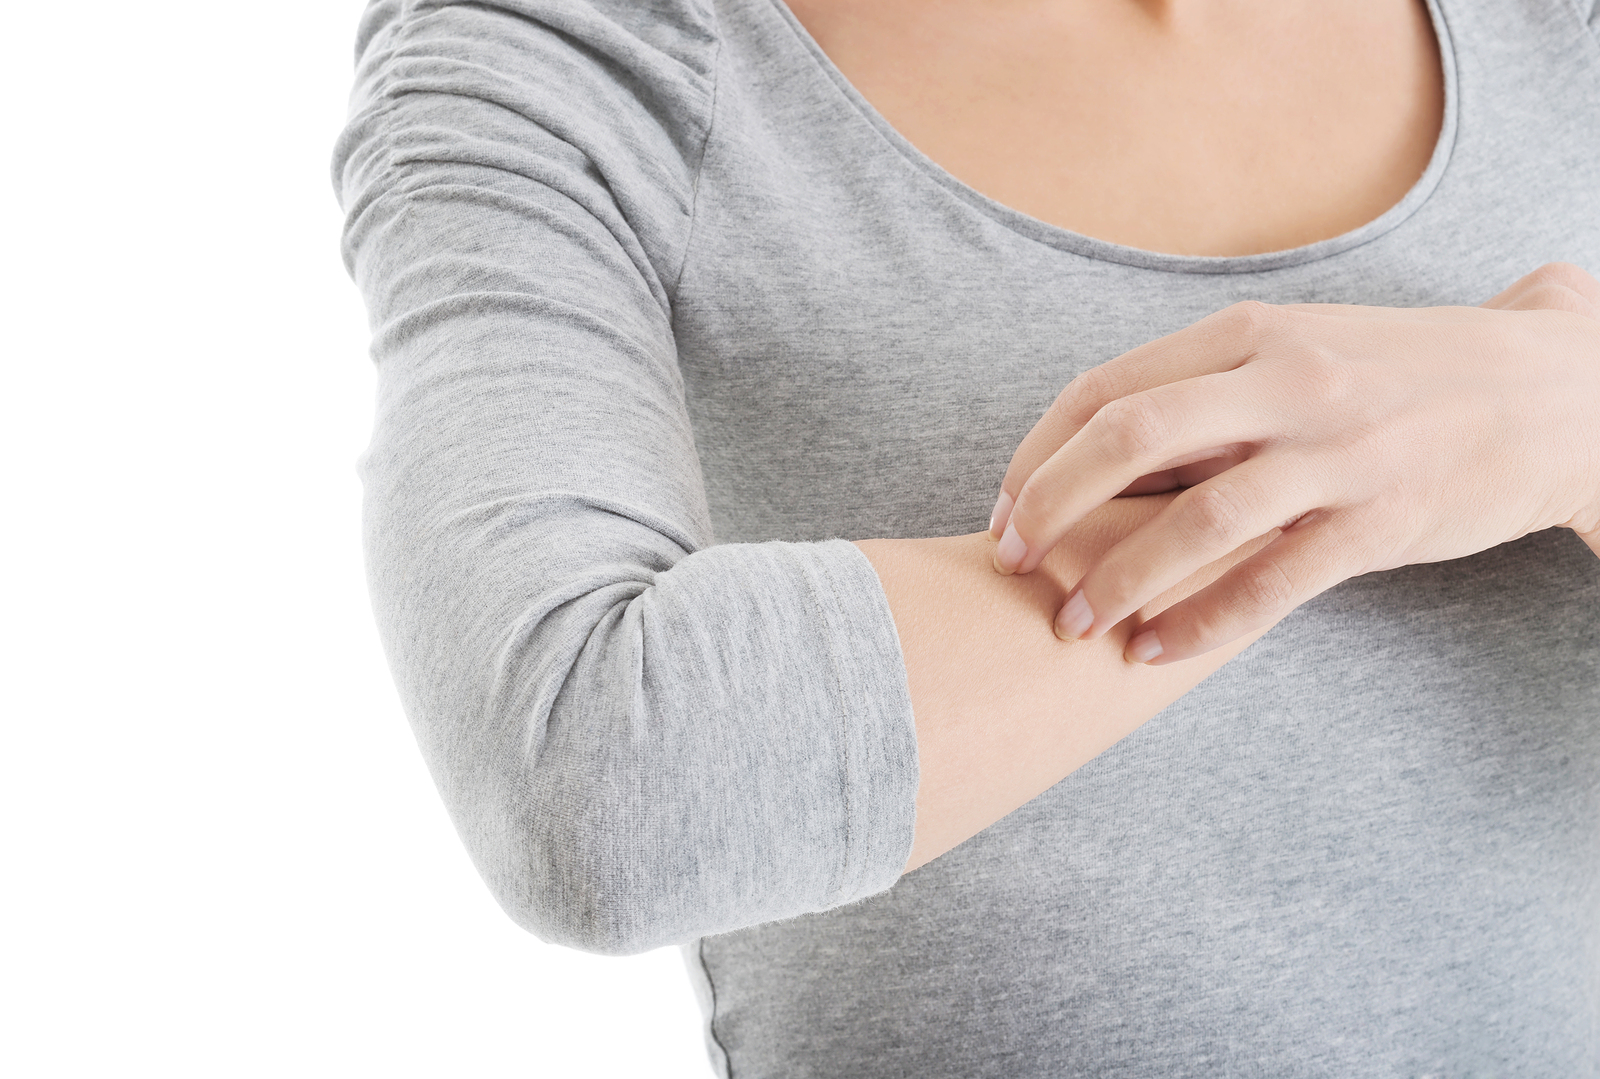 Arm Itch: Causes and Treatments